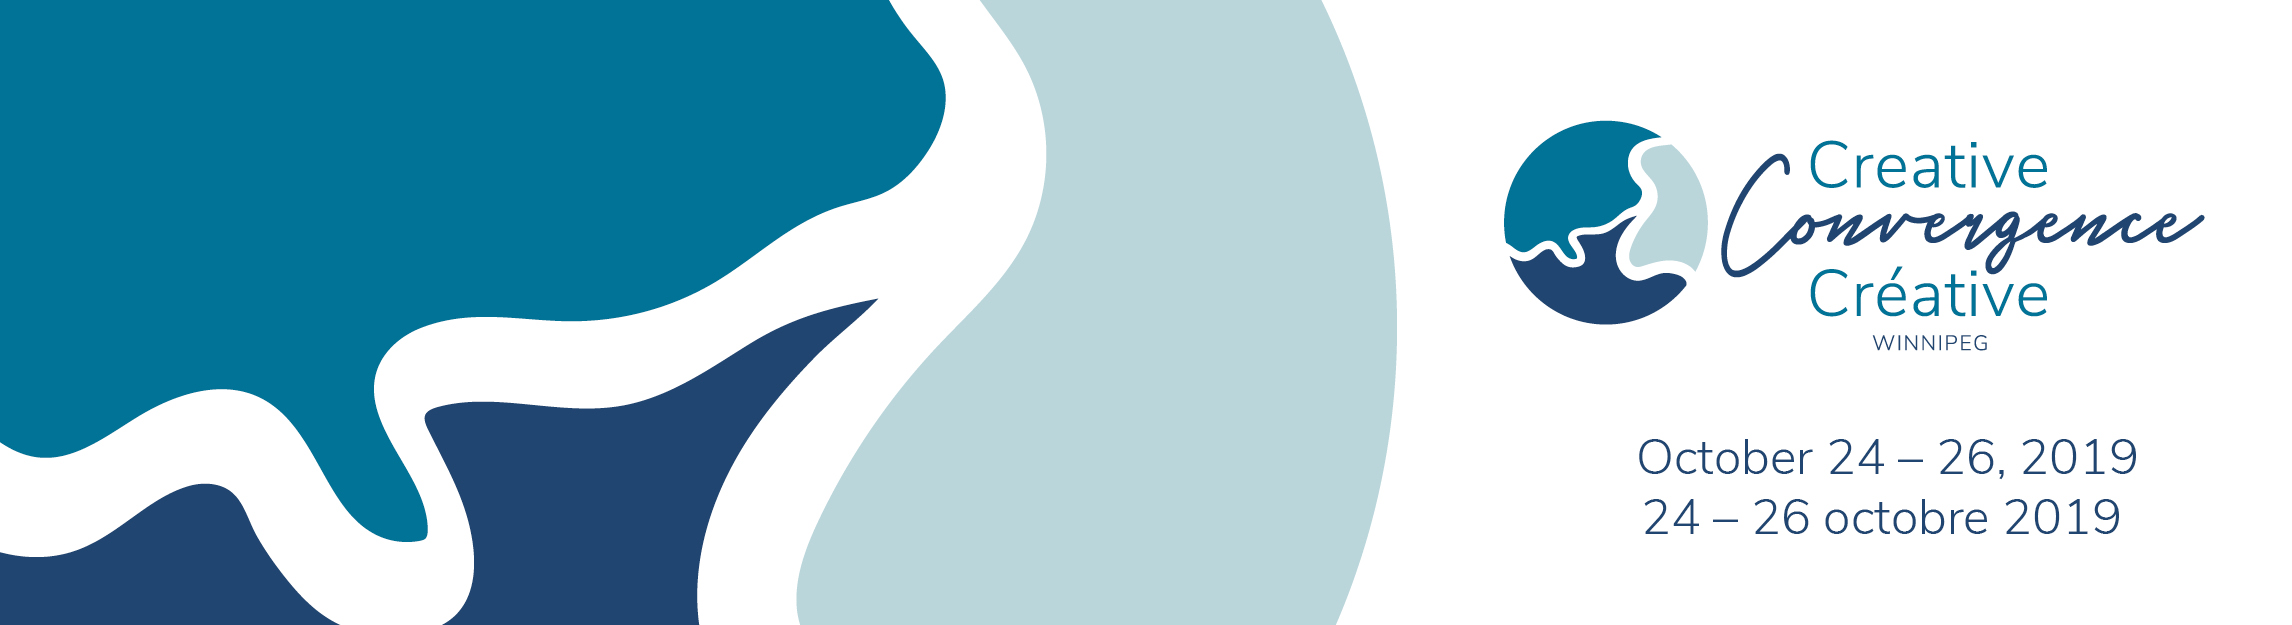 Creative Convergence banner featuring the conference logo in shades of blue. The conference runs October 24-26, 2019, in Winnipeg, Canada.